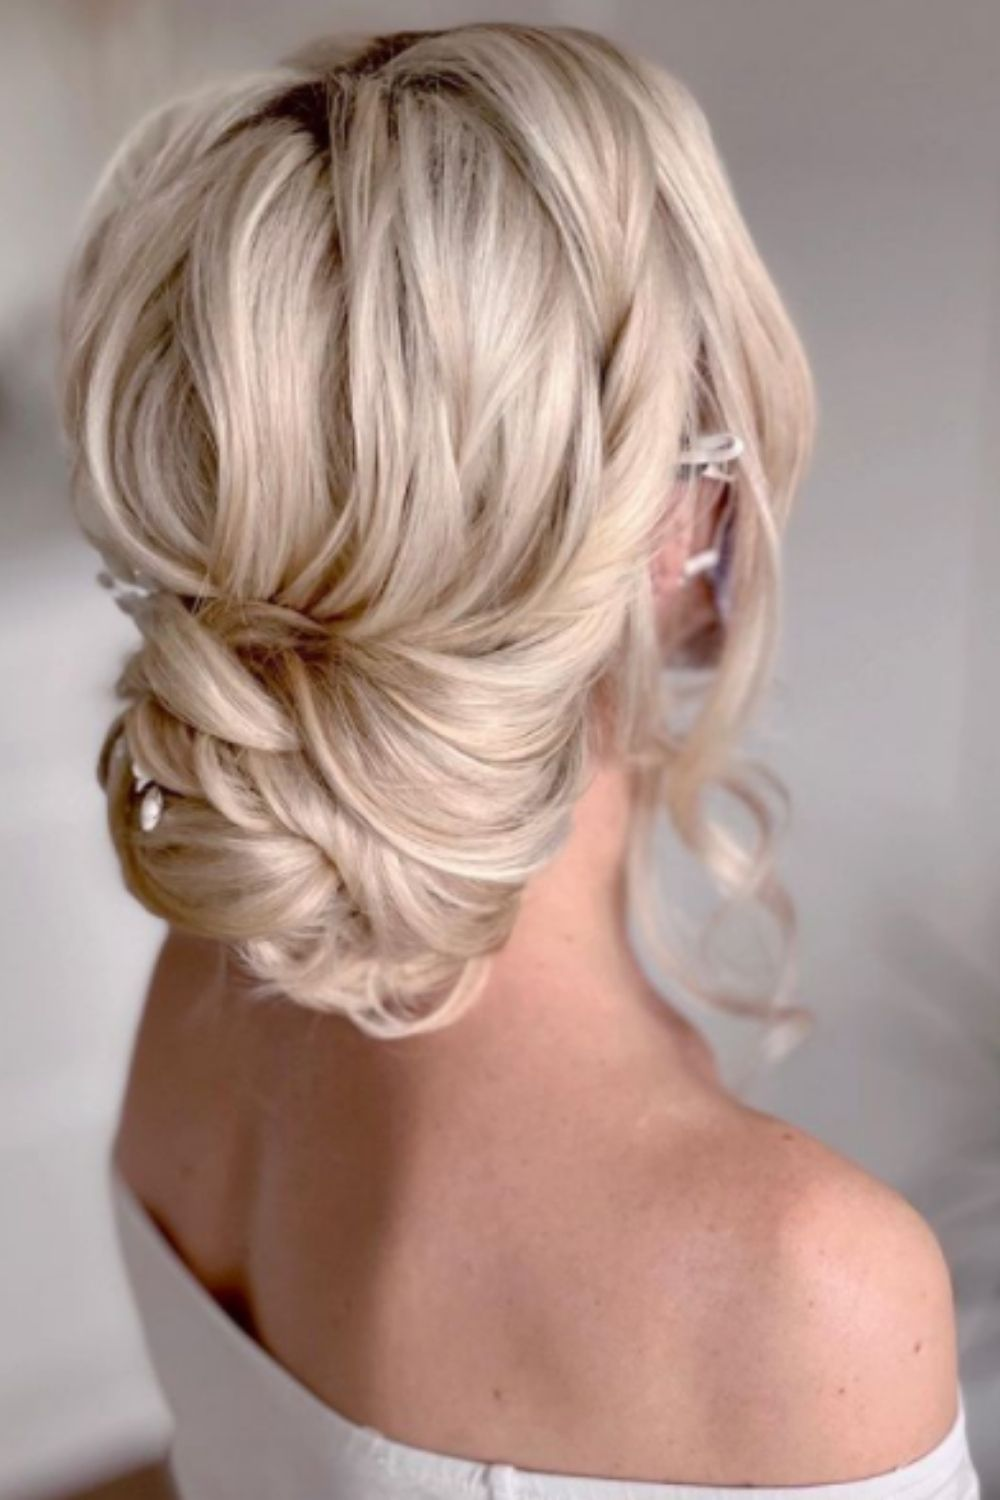 Dutch Braid Crown and Updo for glam hair for special occasion